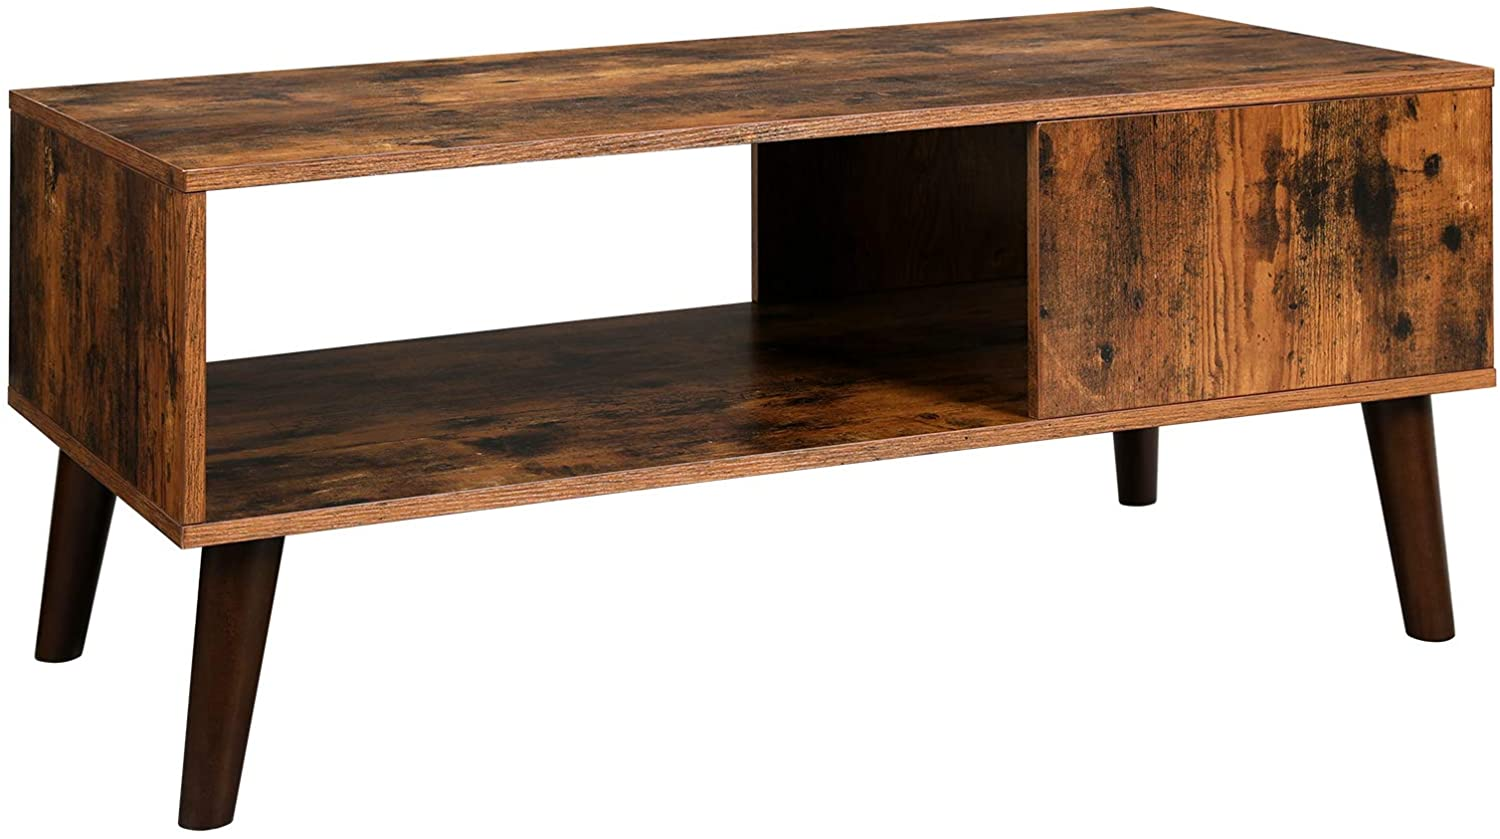 Enjoy fast, free nationwide shipping!  Family owned and operated, HawkinsWoodshop.com is your one stop shop for affordable furniture.  Shop HawkinsWoodshop.com for solid wood & metal modern, traditional, contemporary, industrial, custom, rustic, and farmhouse furniture including our Ryan Retro Industrial Farmhouse Coffee Table.